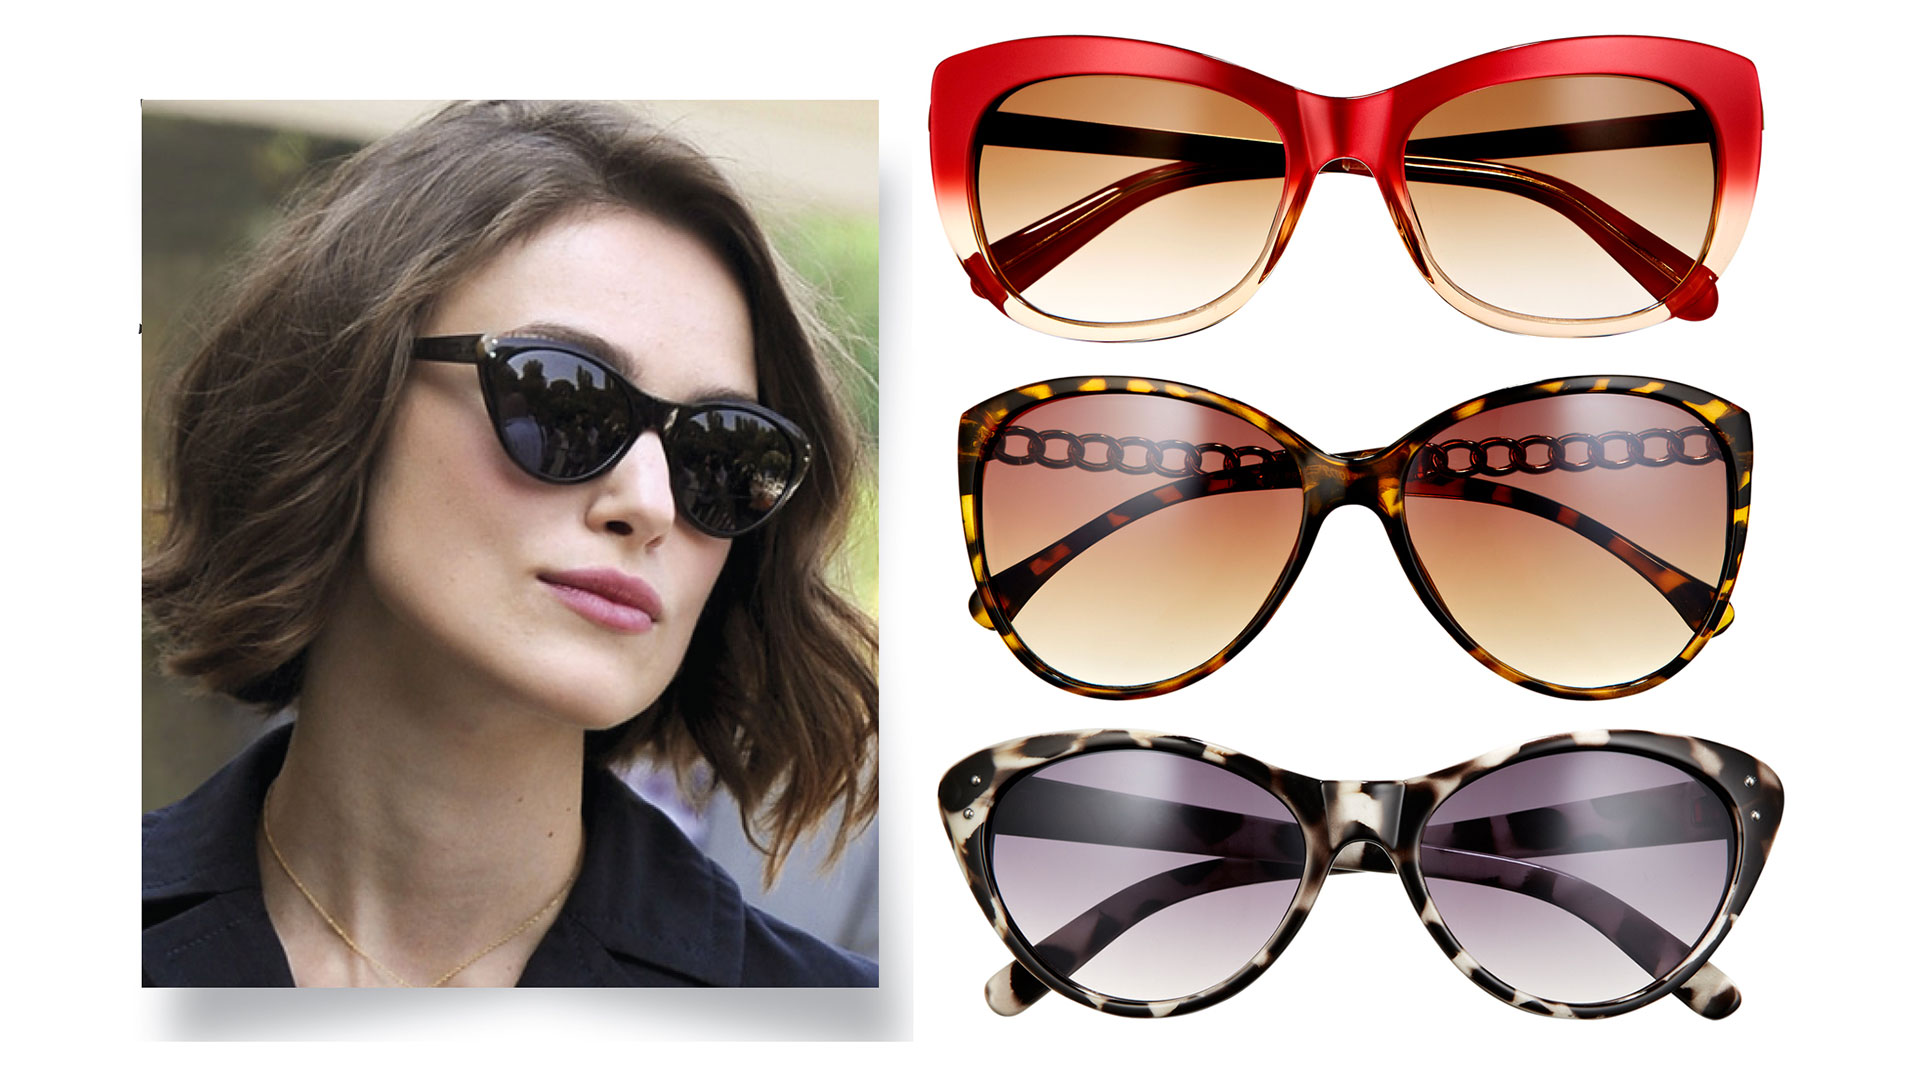 Women s Eyeglass Frames For Square Faces : Best Sunglasses For Face Shape - Sunglass Shapes That ...